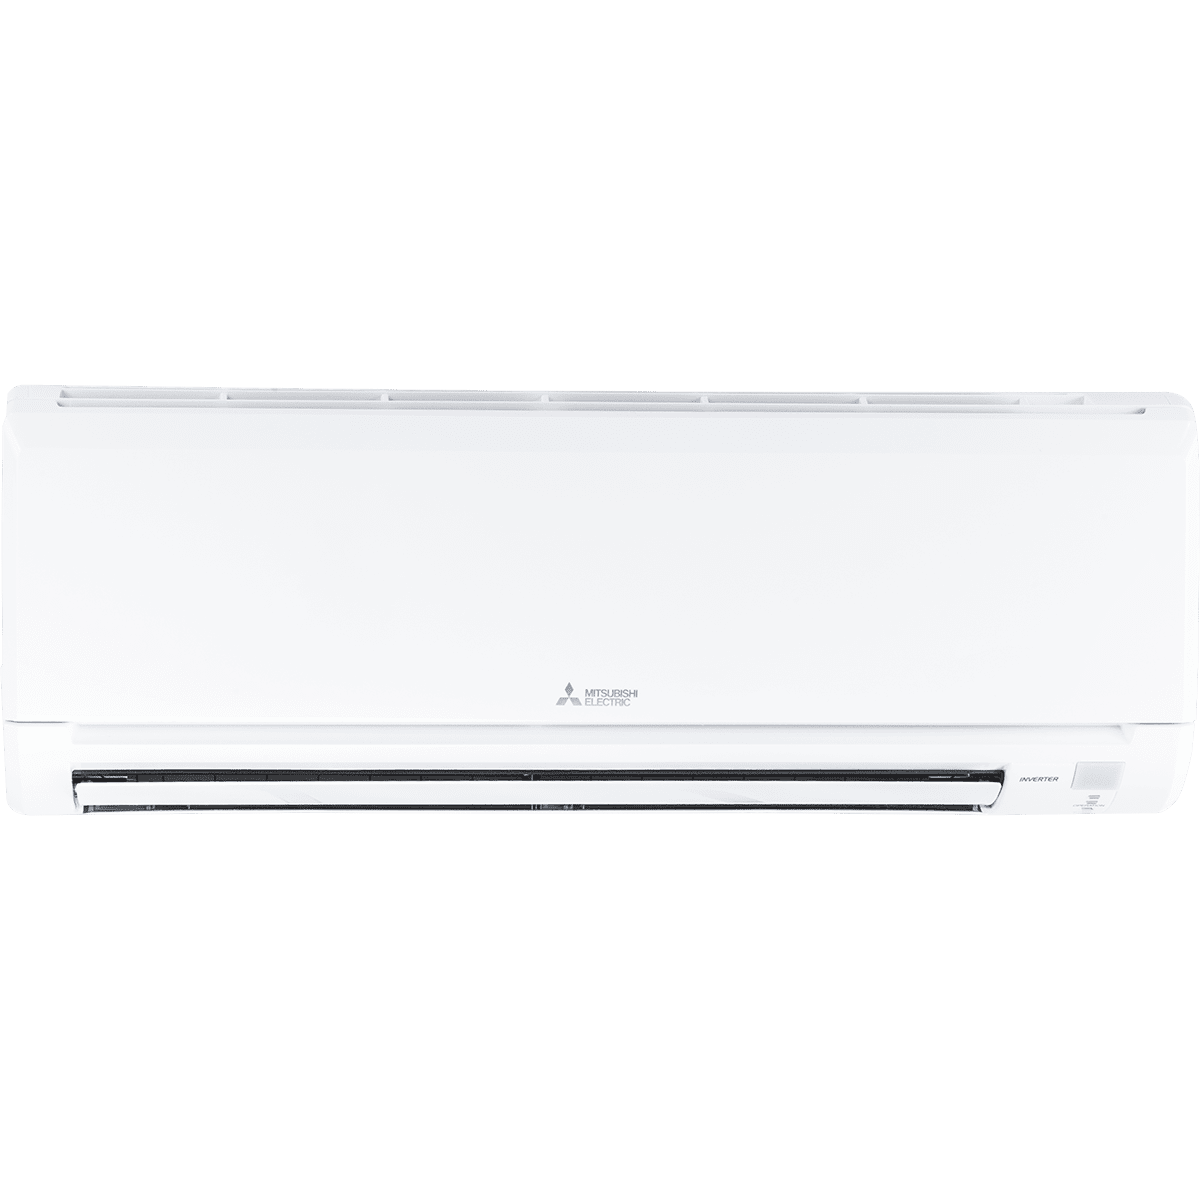 Mitsubishi 18,000 BTU 21 Seer Ductless Mini-Split Heat Pump